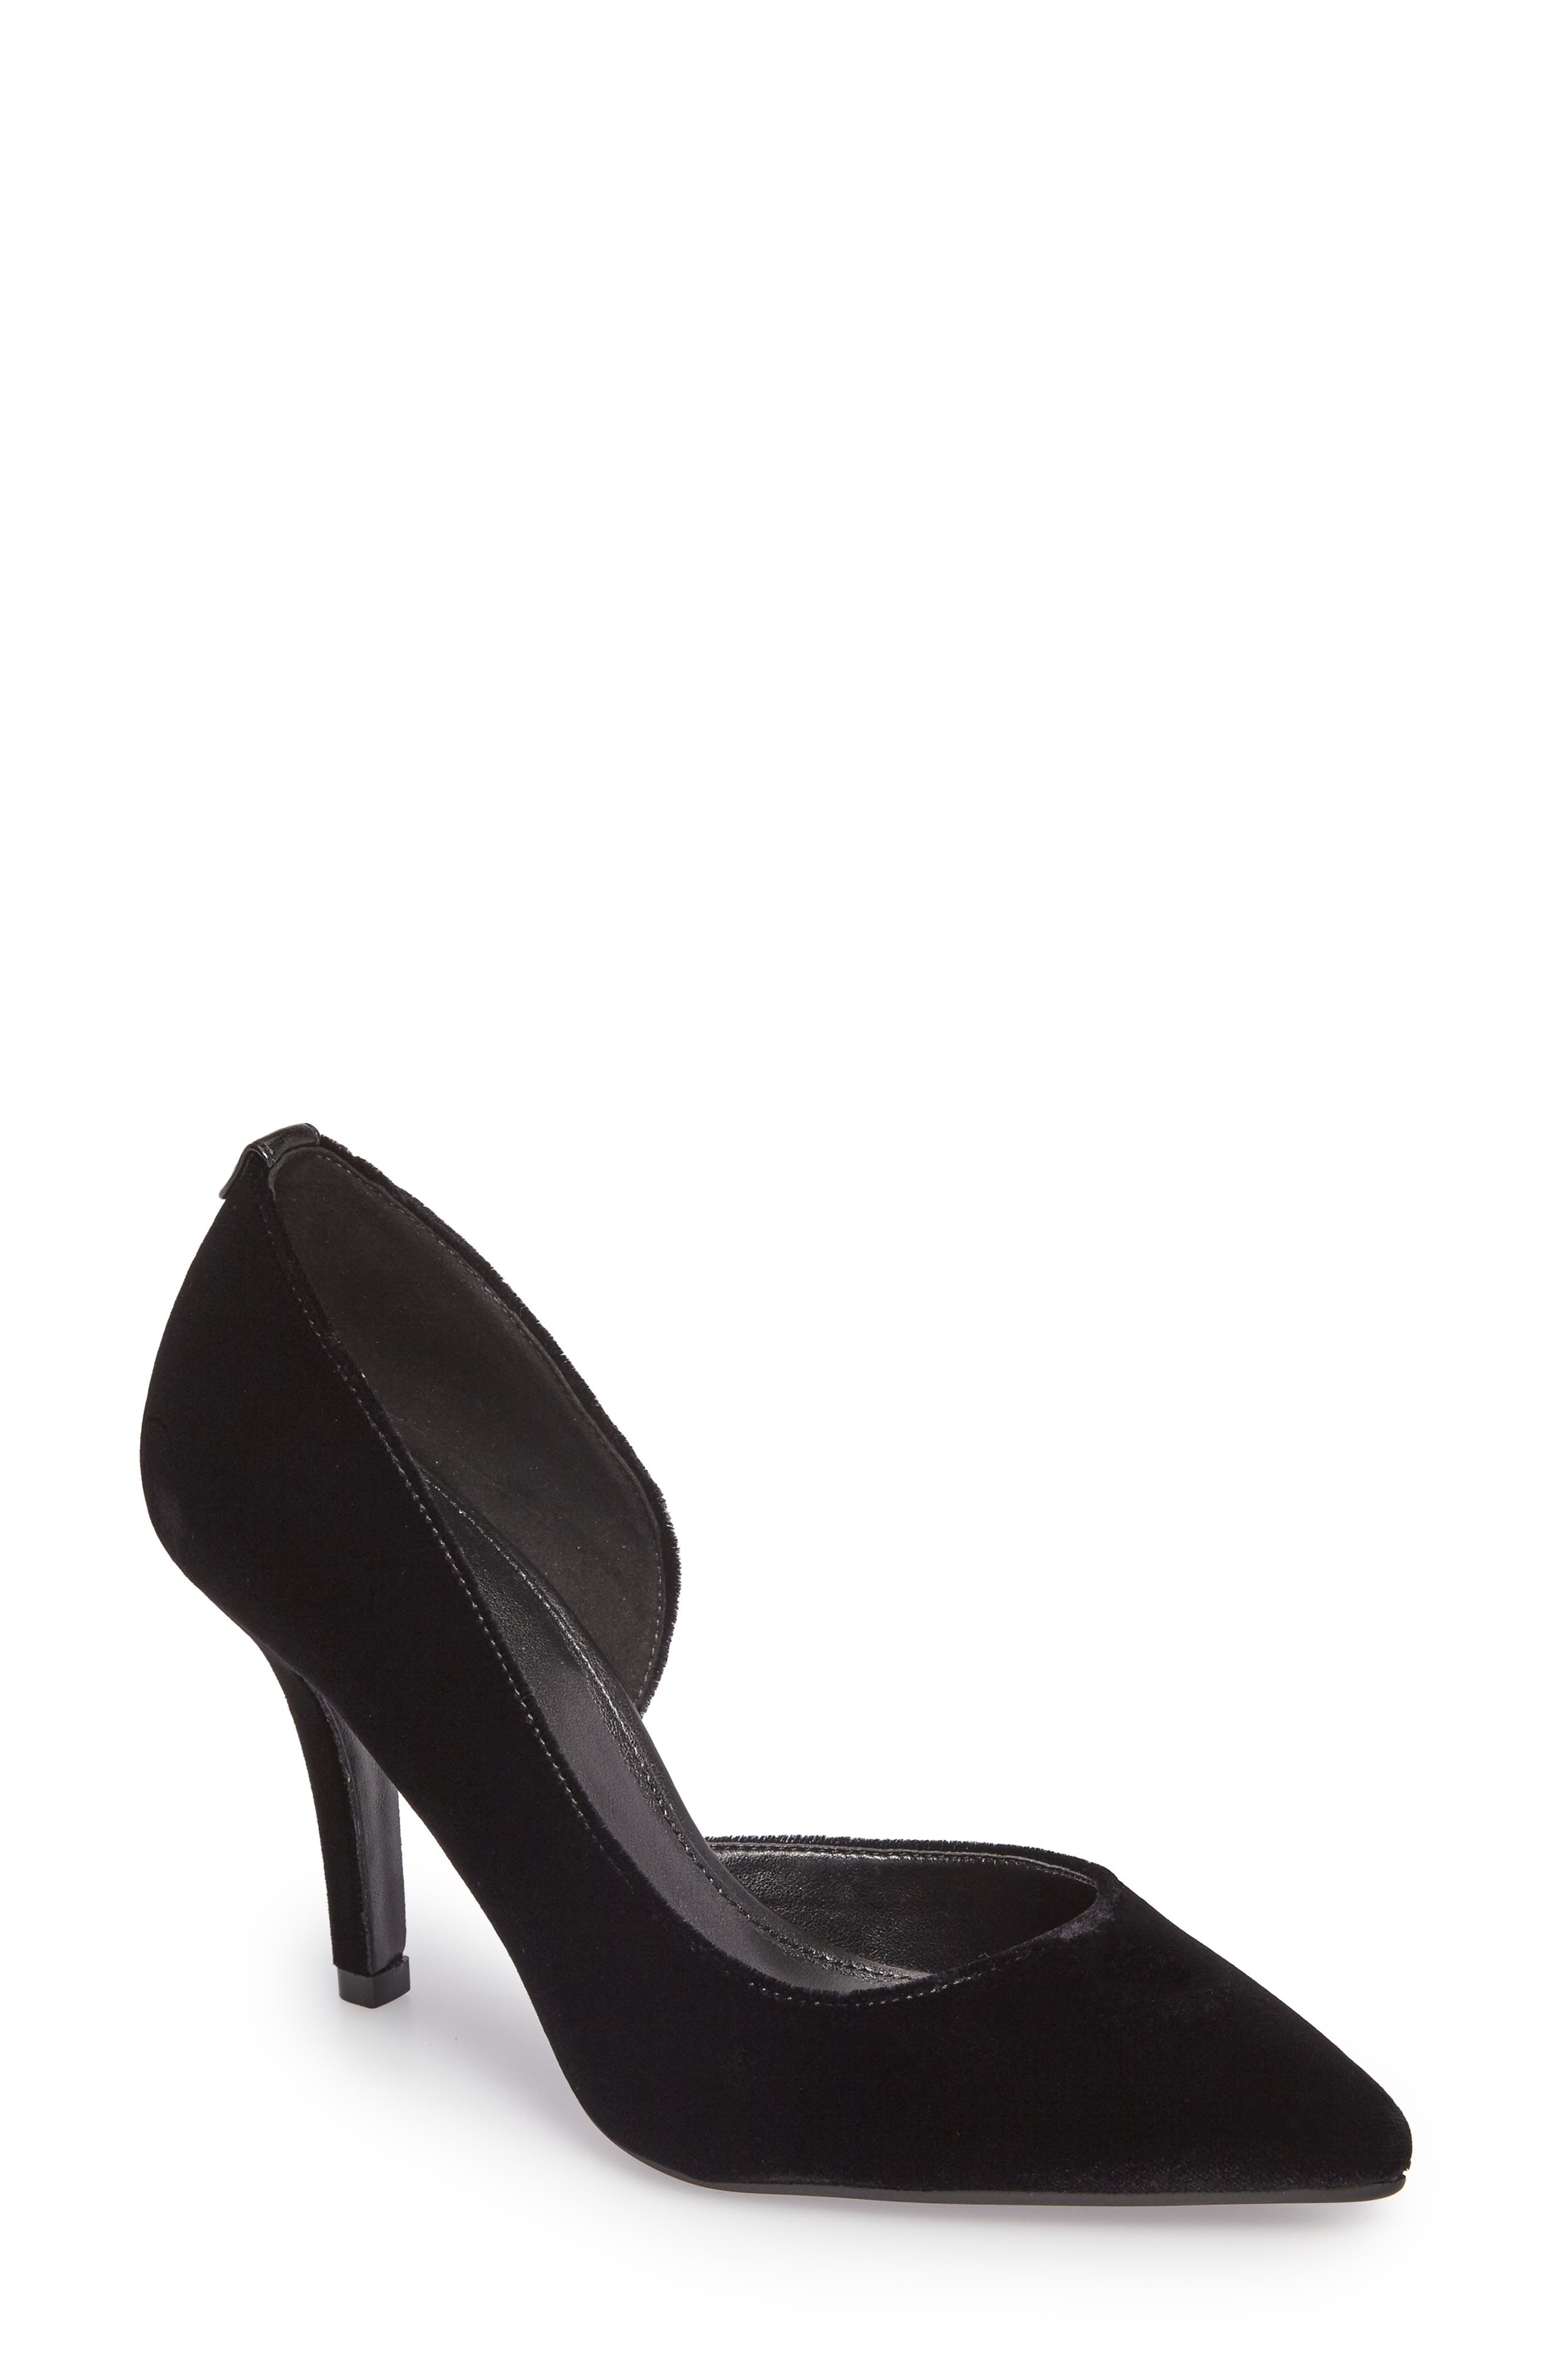 'Nathalie Flex' Half D'Orsay Pump,                         Main,                         color, 002